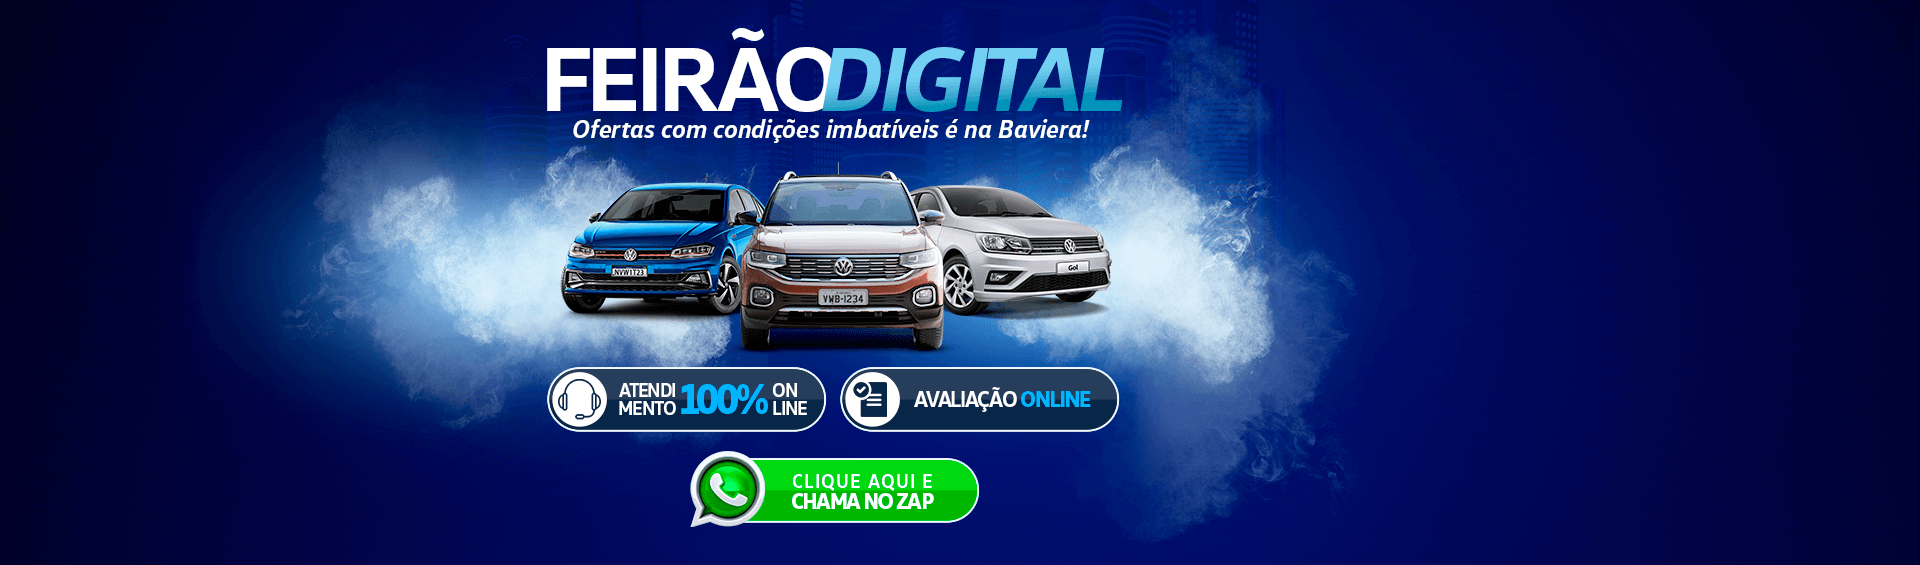 feirao-digital-ofertas